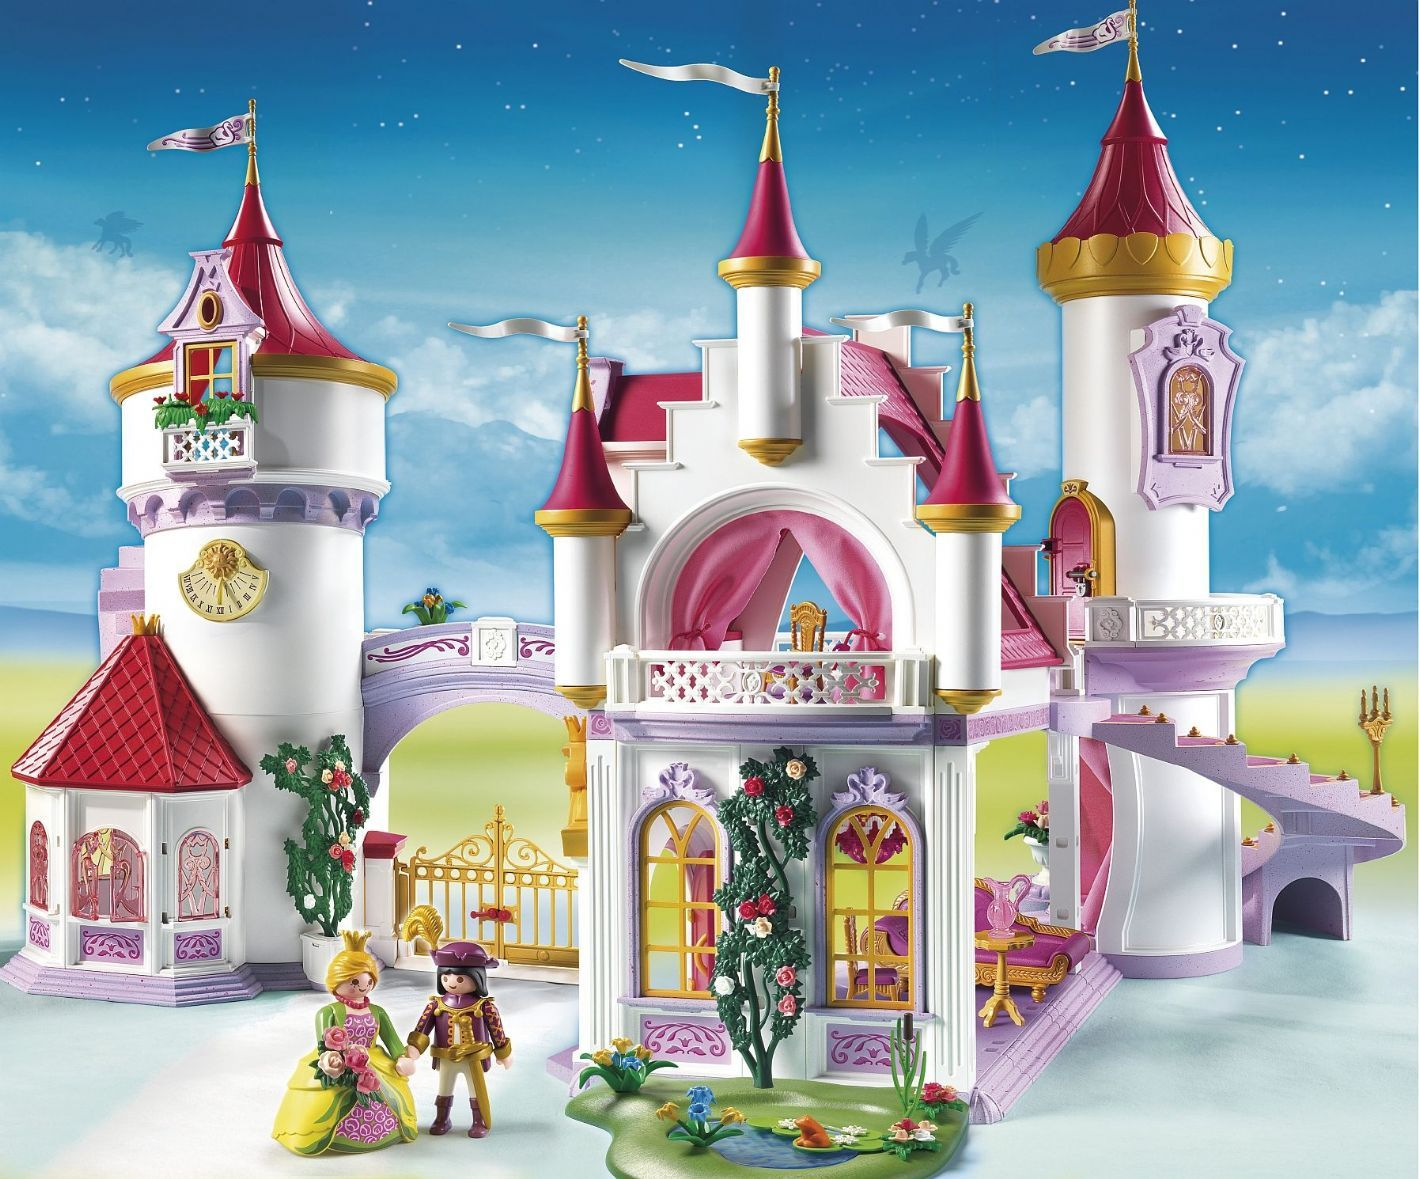 Playmobil Princess Fantasy Castle 5142 Toy At